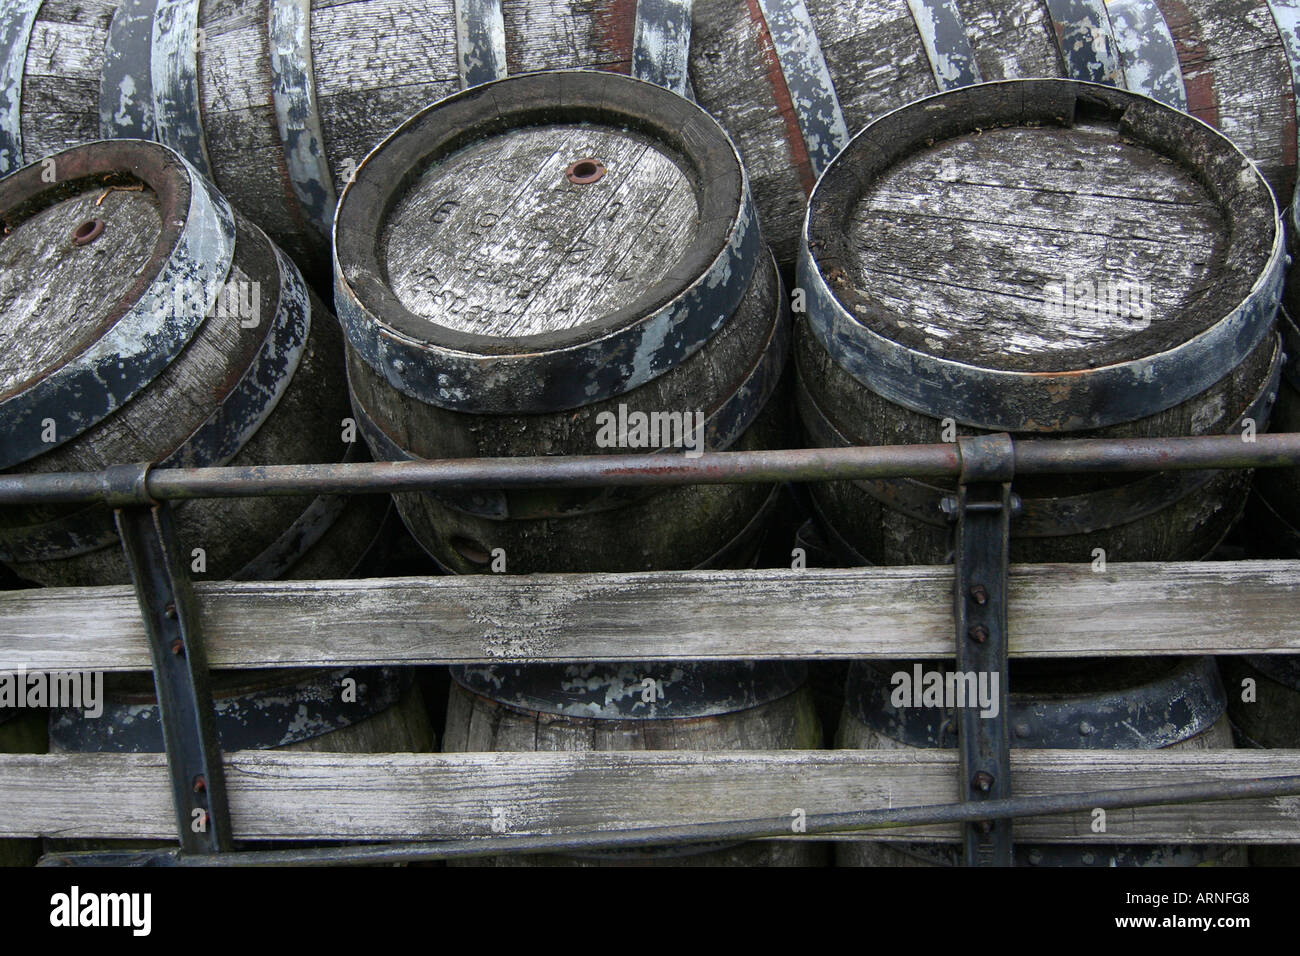 Old wooden beer kegs on a cart - Stock Image